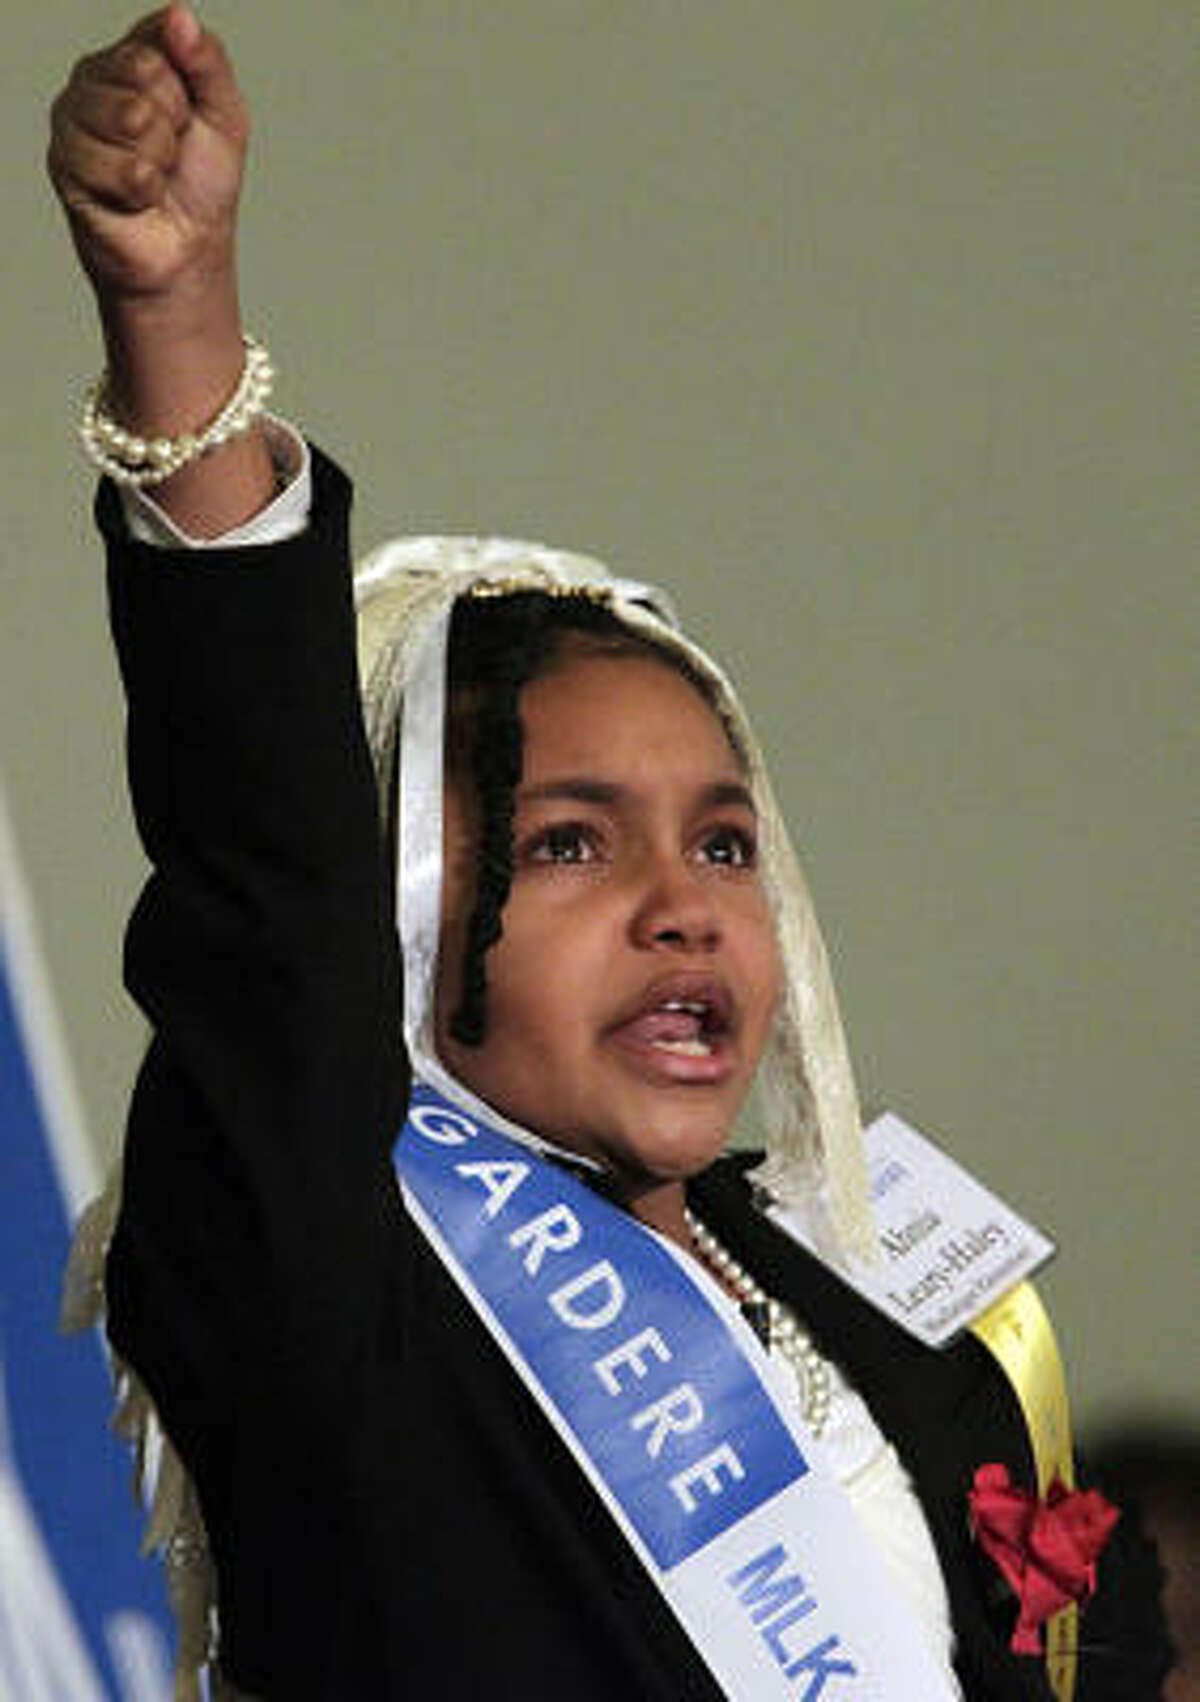 Ahnia Leary-Haley's , 4th grader at MacGregor Elementary School, delivers her speech.